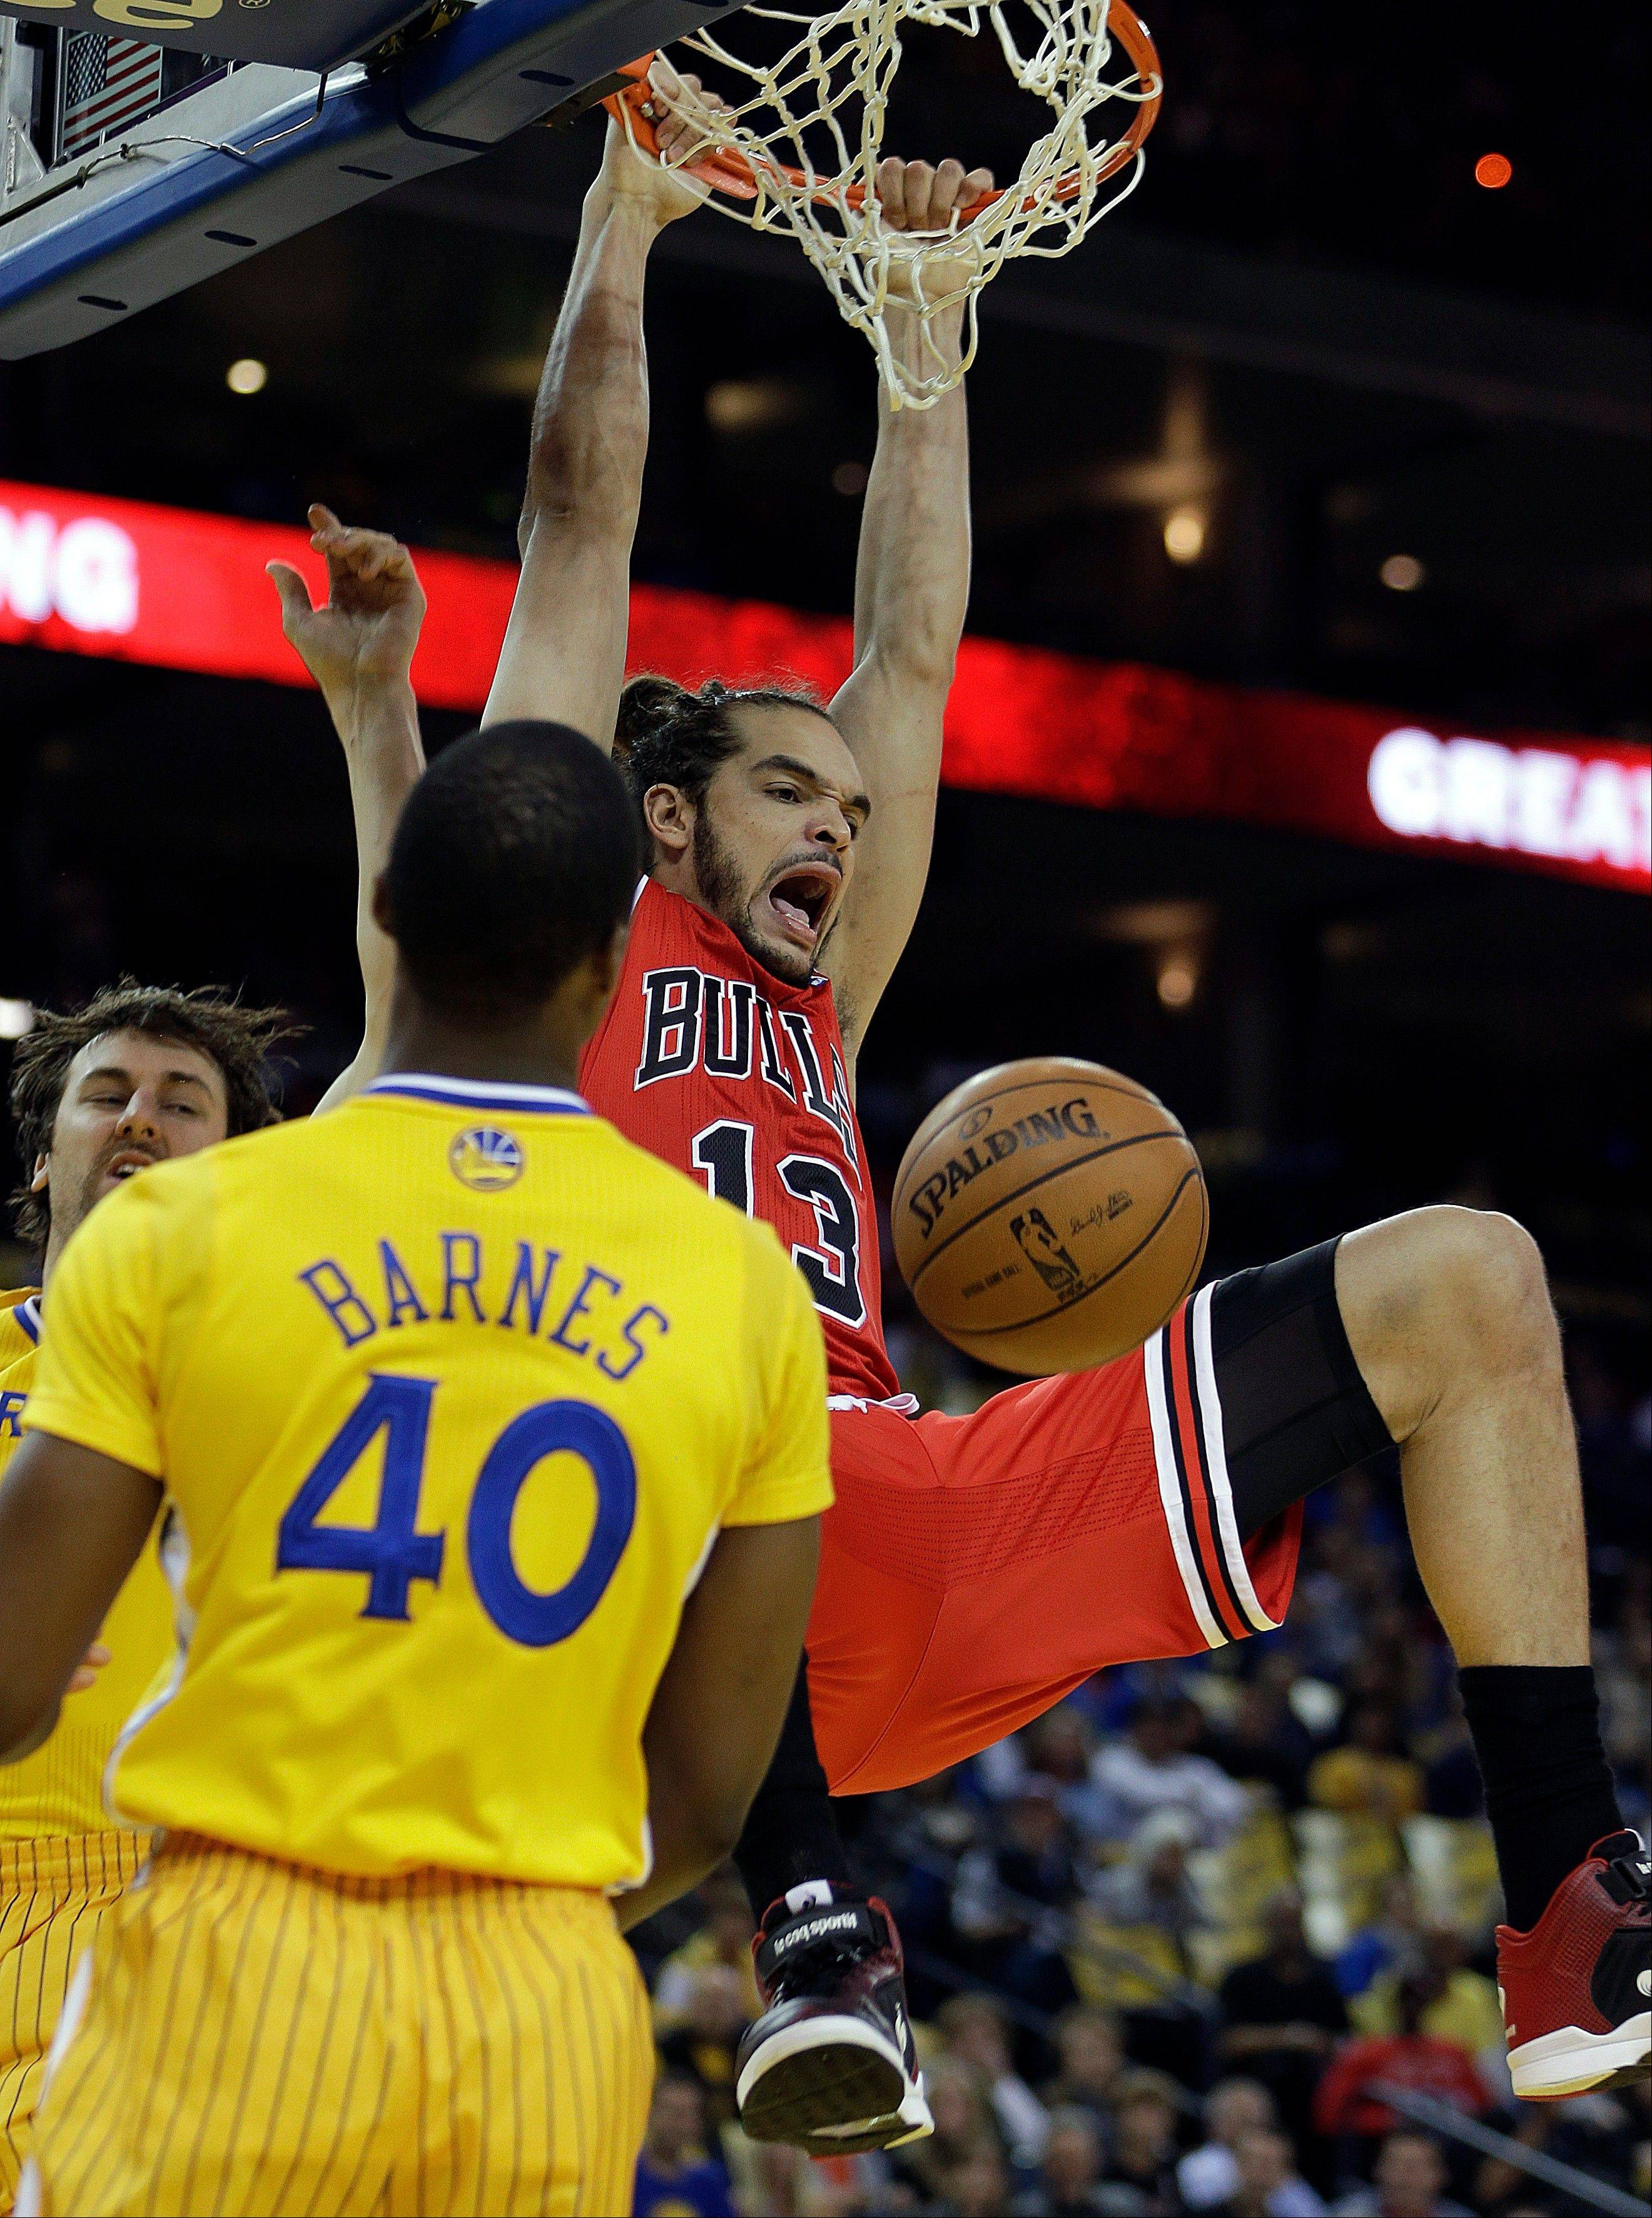 Chicago Bulls' Joakim Noah scores over Golden State Warriors' Harrison Barnes Friday. Under a New Jersey proposal bettors would put a one-day team together and compete for a pool of cash.